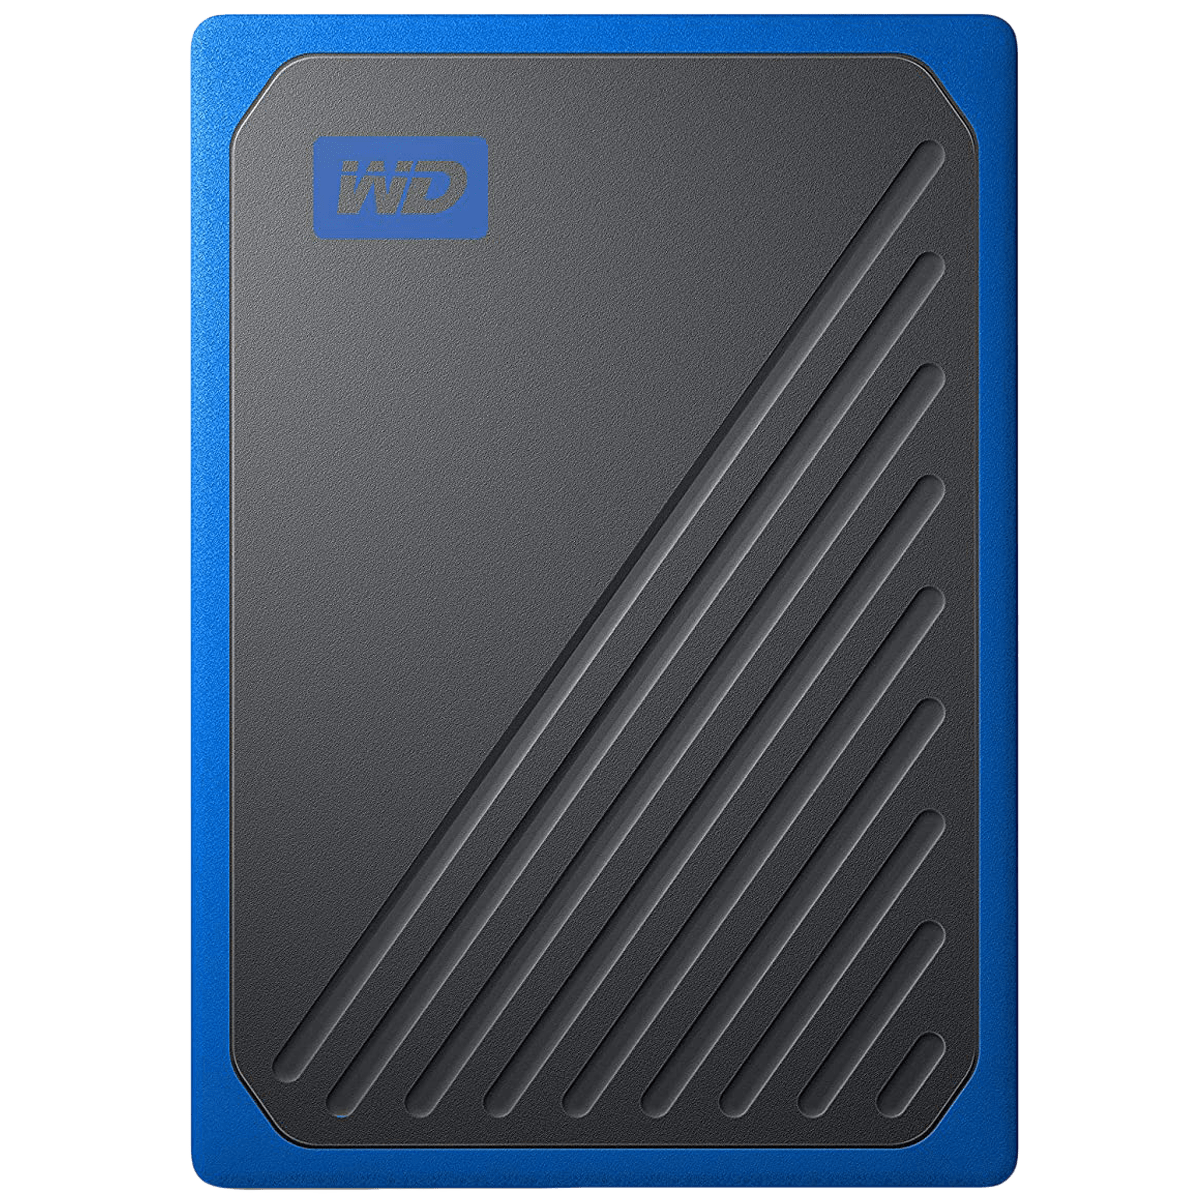 Western Digital My Passport Go 500GB USB 3.0 Solid State Drive (Compact and Integrated, WDBMCG5000ABT-WESN, Black/Cobalt Trim)